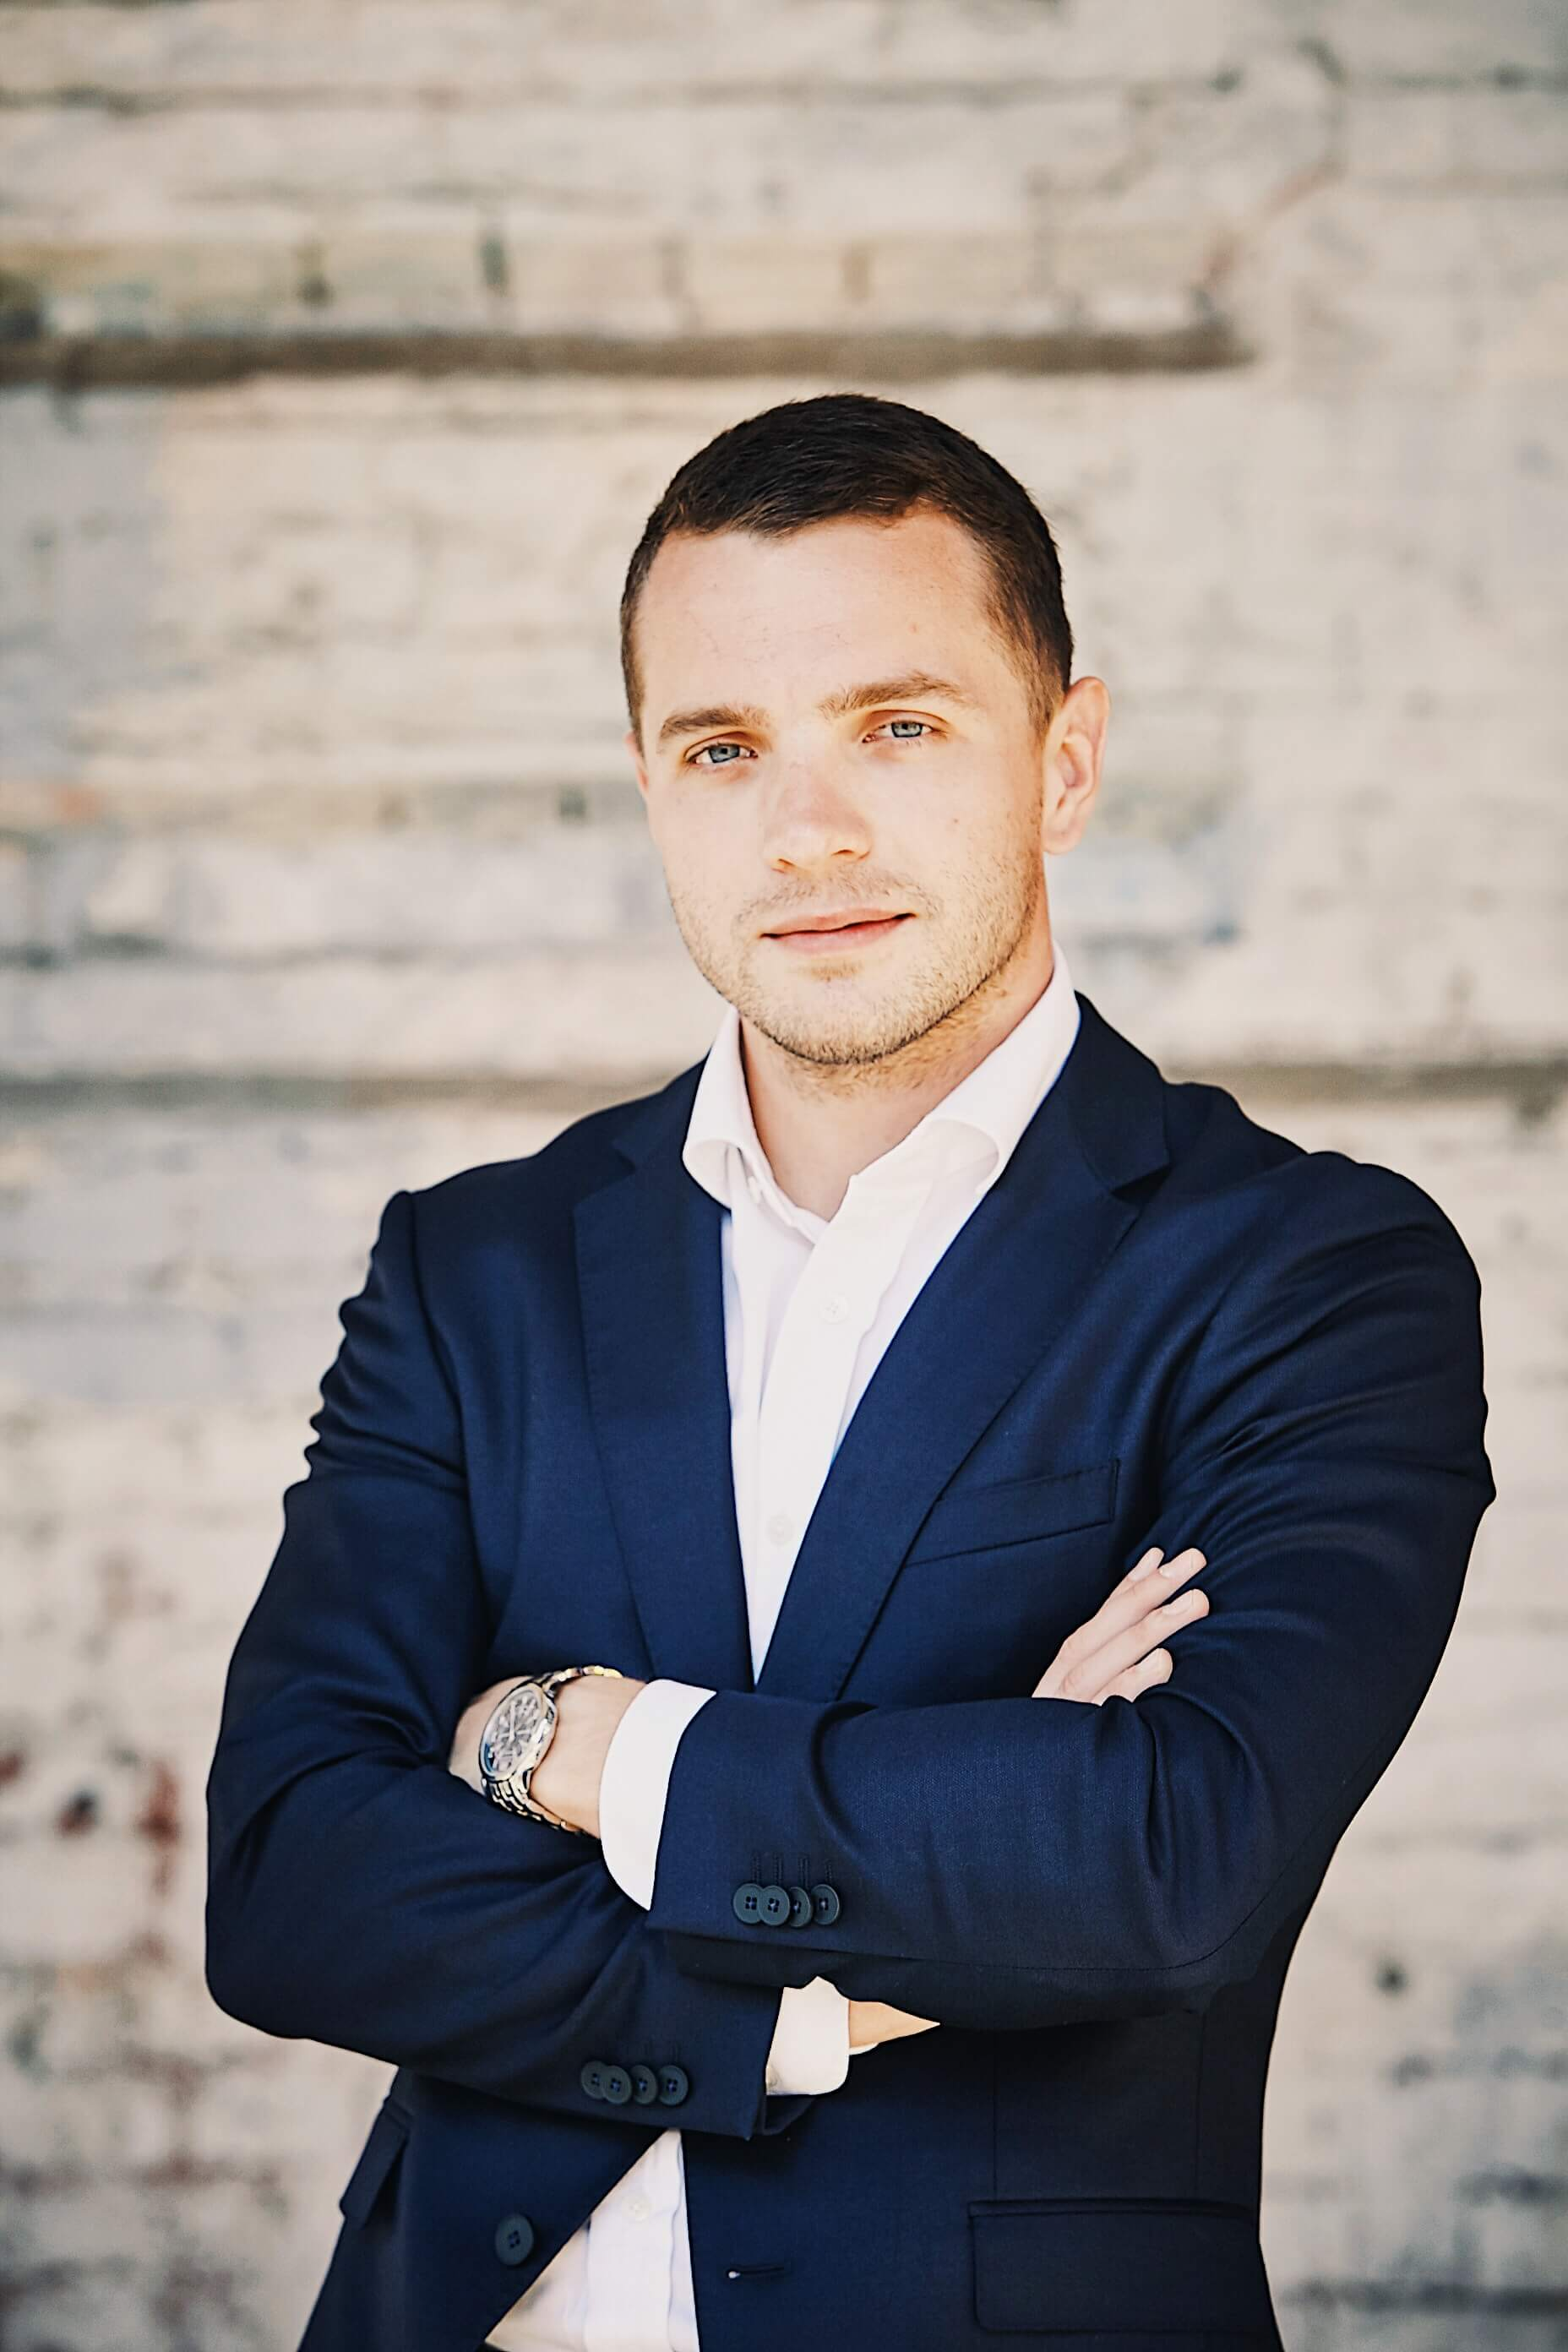 Dmitry, Oxford MBA Student